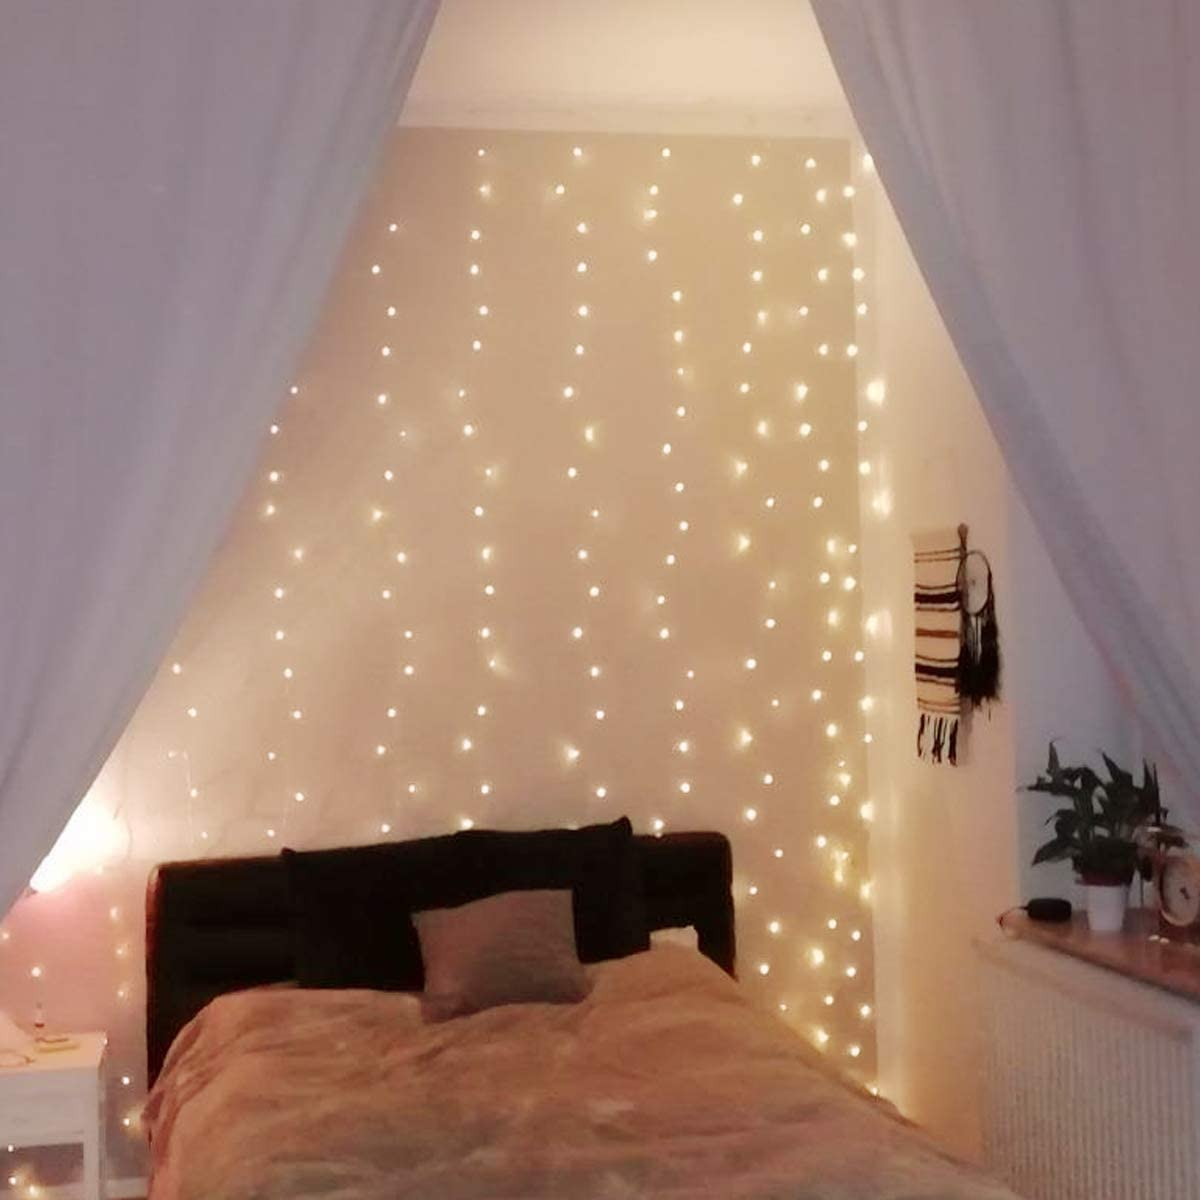 Le Led Curtain Lights With Remote And Hooks 3m X 3m Plug In Fairy Lights 8 Modes Timer 300 Led Warm White Copper Wire Waterproof String Lights For Christmas Bedroom Gazebo Party